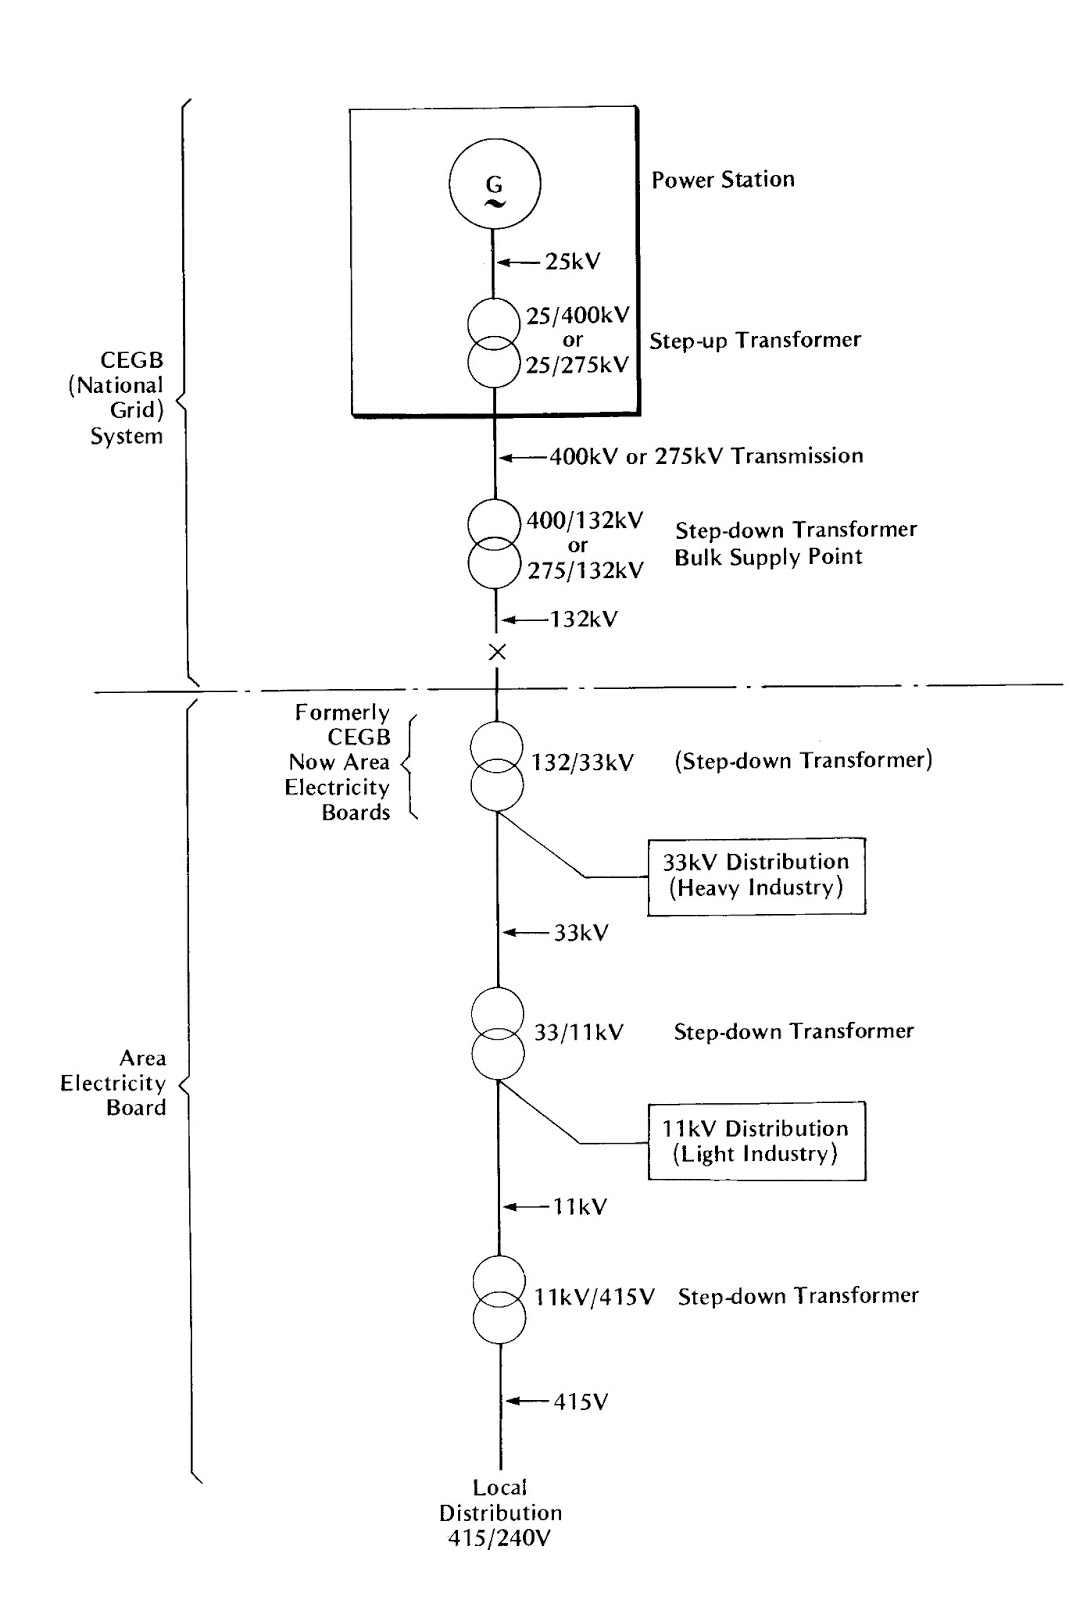 Lovely Kvt 719dvd Wiring Diagram Pictures Inspiration - Wiring ...